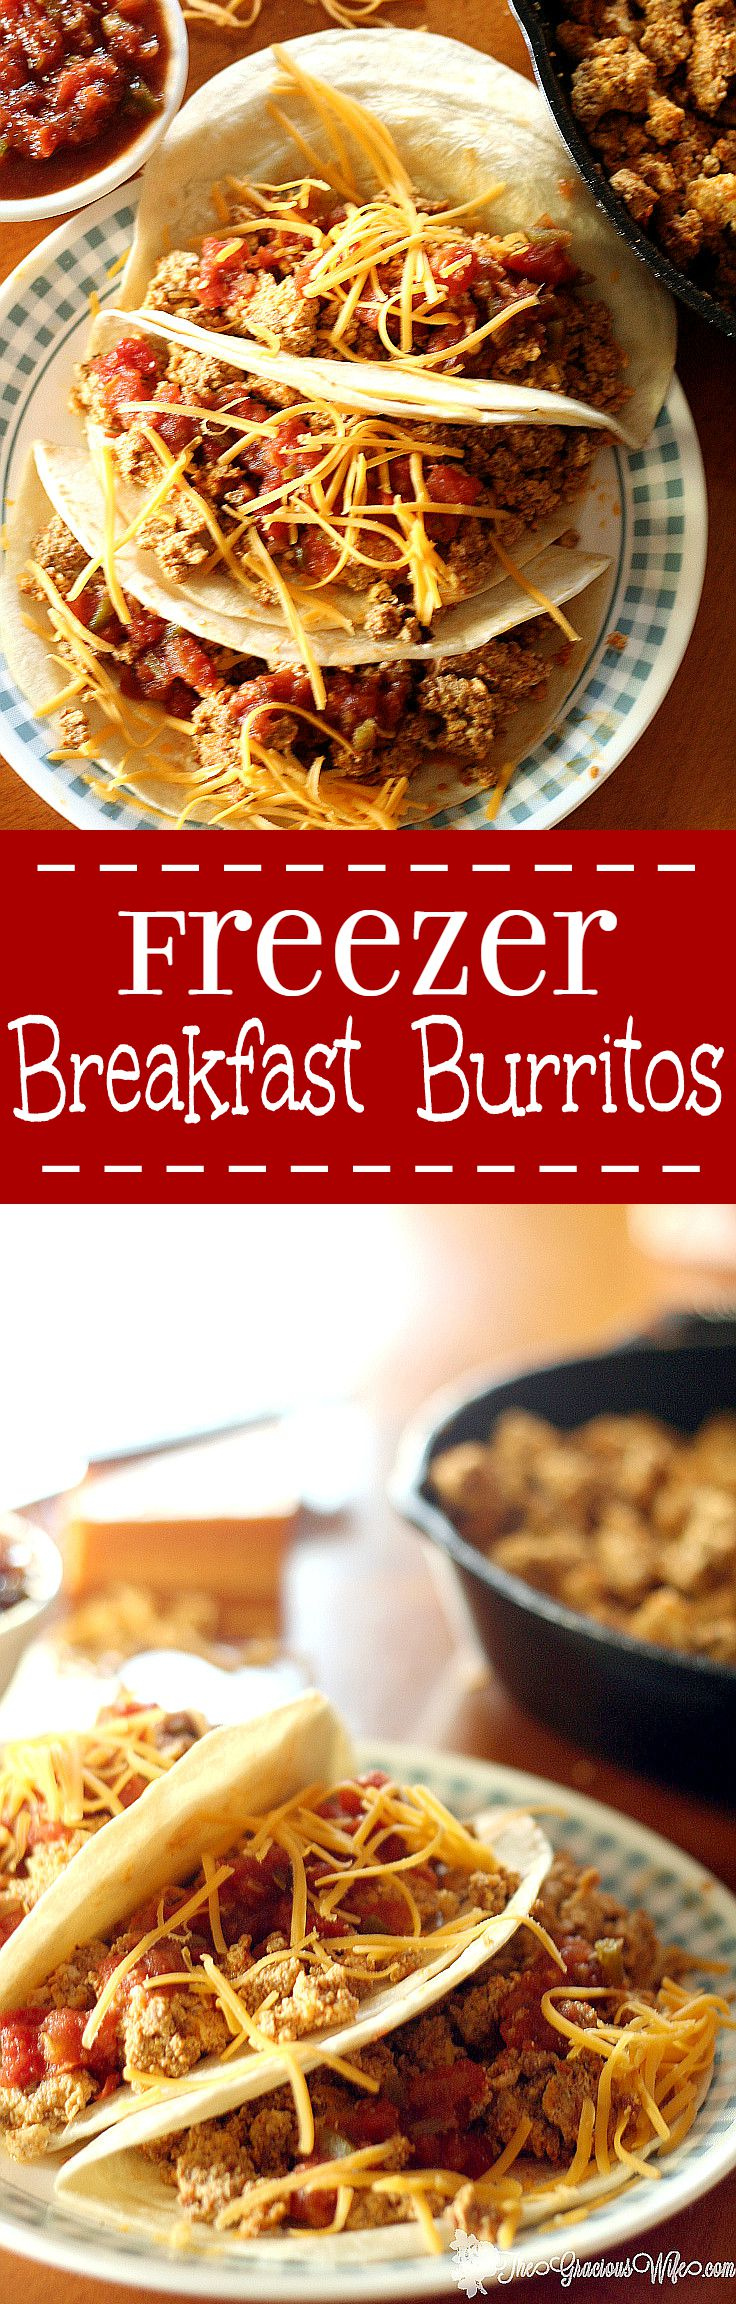 Freezer Breakfast Burritos Recipe - a quick and easy breakfast recipe idea that you can make ahead AND freeze. Eggs, spicy chorizo, and toppings like salsa or pico de gallo. One of our breakfast favorites!